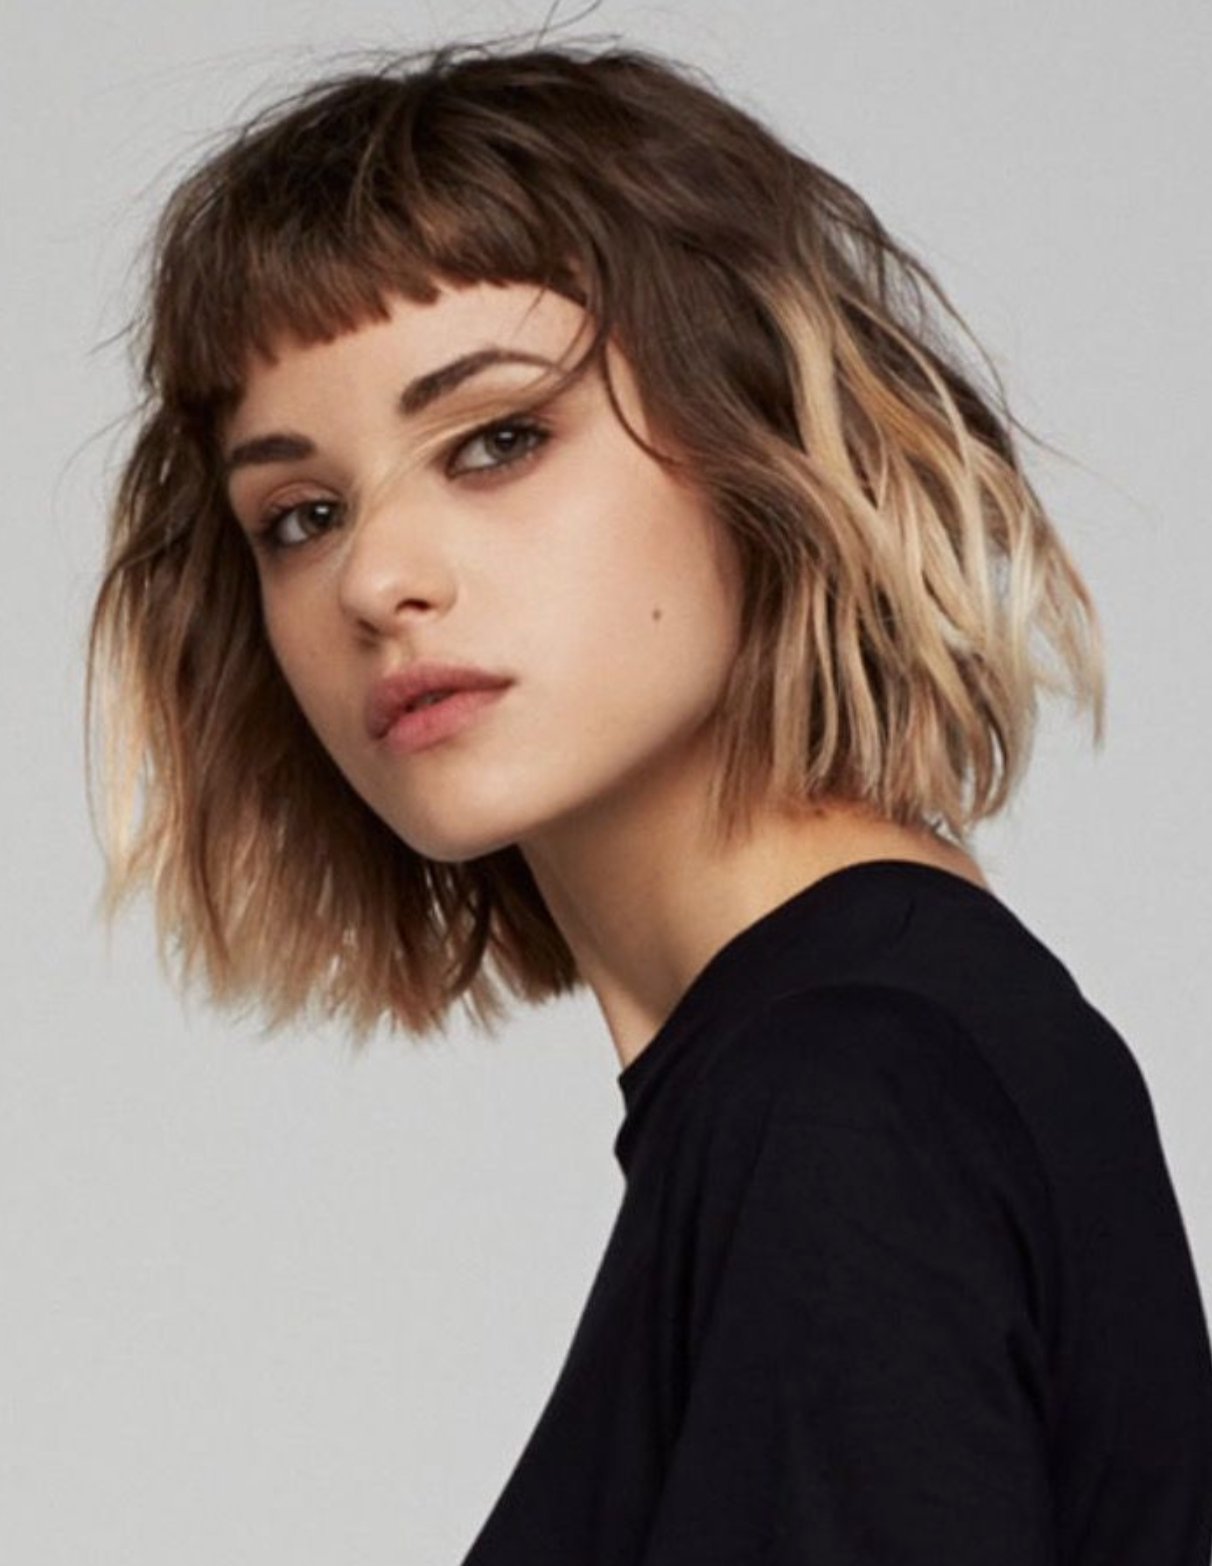 7 Short Hairstyles To Rock This Summer – Shelley's World Regarding Short Hairstyles For Summer (View 22 of 25)